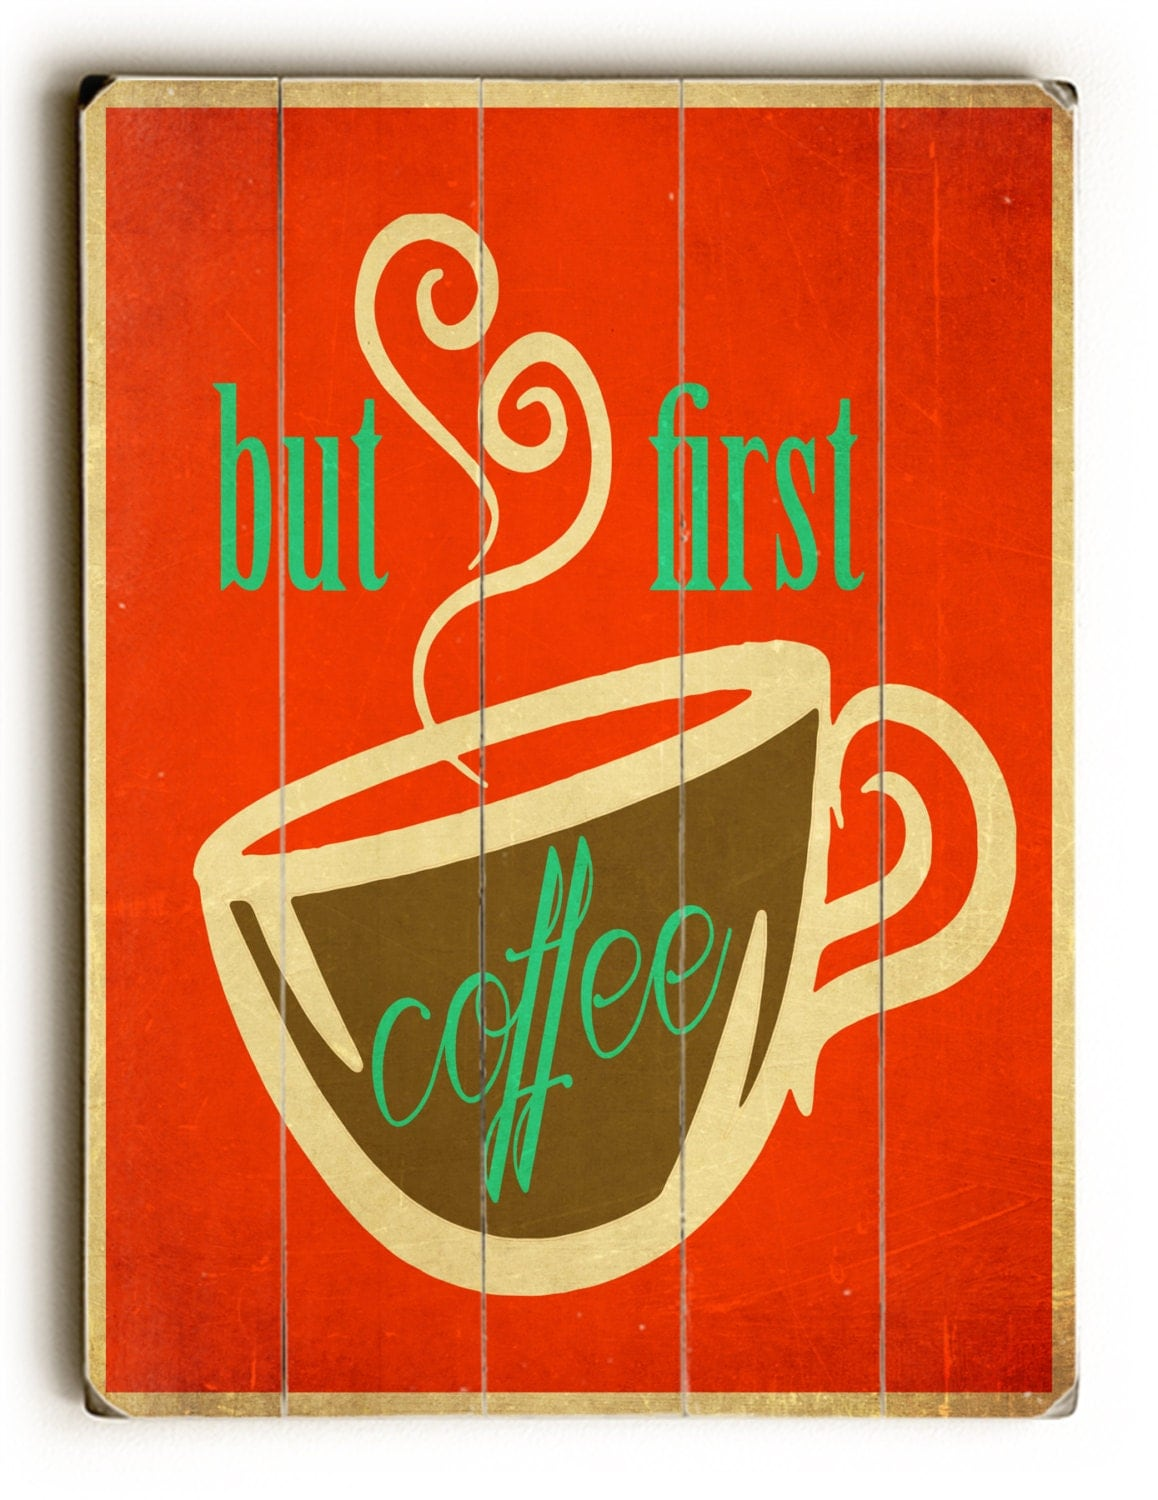 Wooden Sign Coffee Sign Kitchen Decor By Happylettershop. Wall Decorations For Guys. Price To Paint A Room. Decorative Bathroom Exhaust Fan With Light. Macys Dining Room. Dorm Room Refrigerator. Elegant Dining Rooms. Decorative Painting Jobs. Cake Decorating Classes Mn